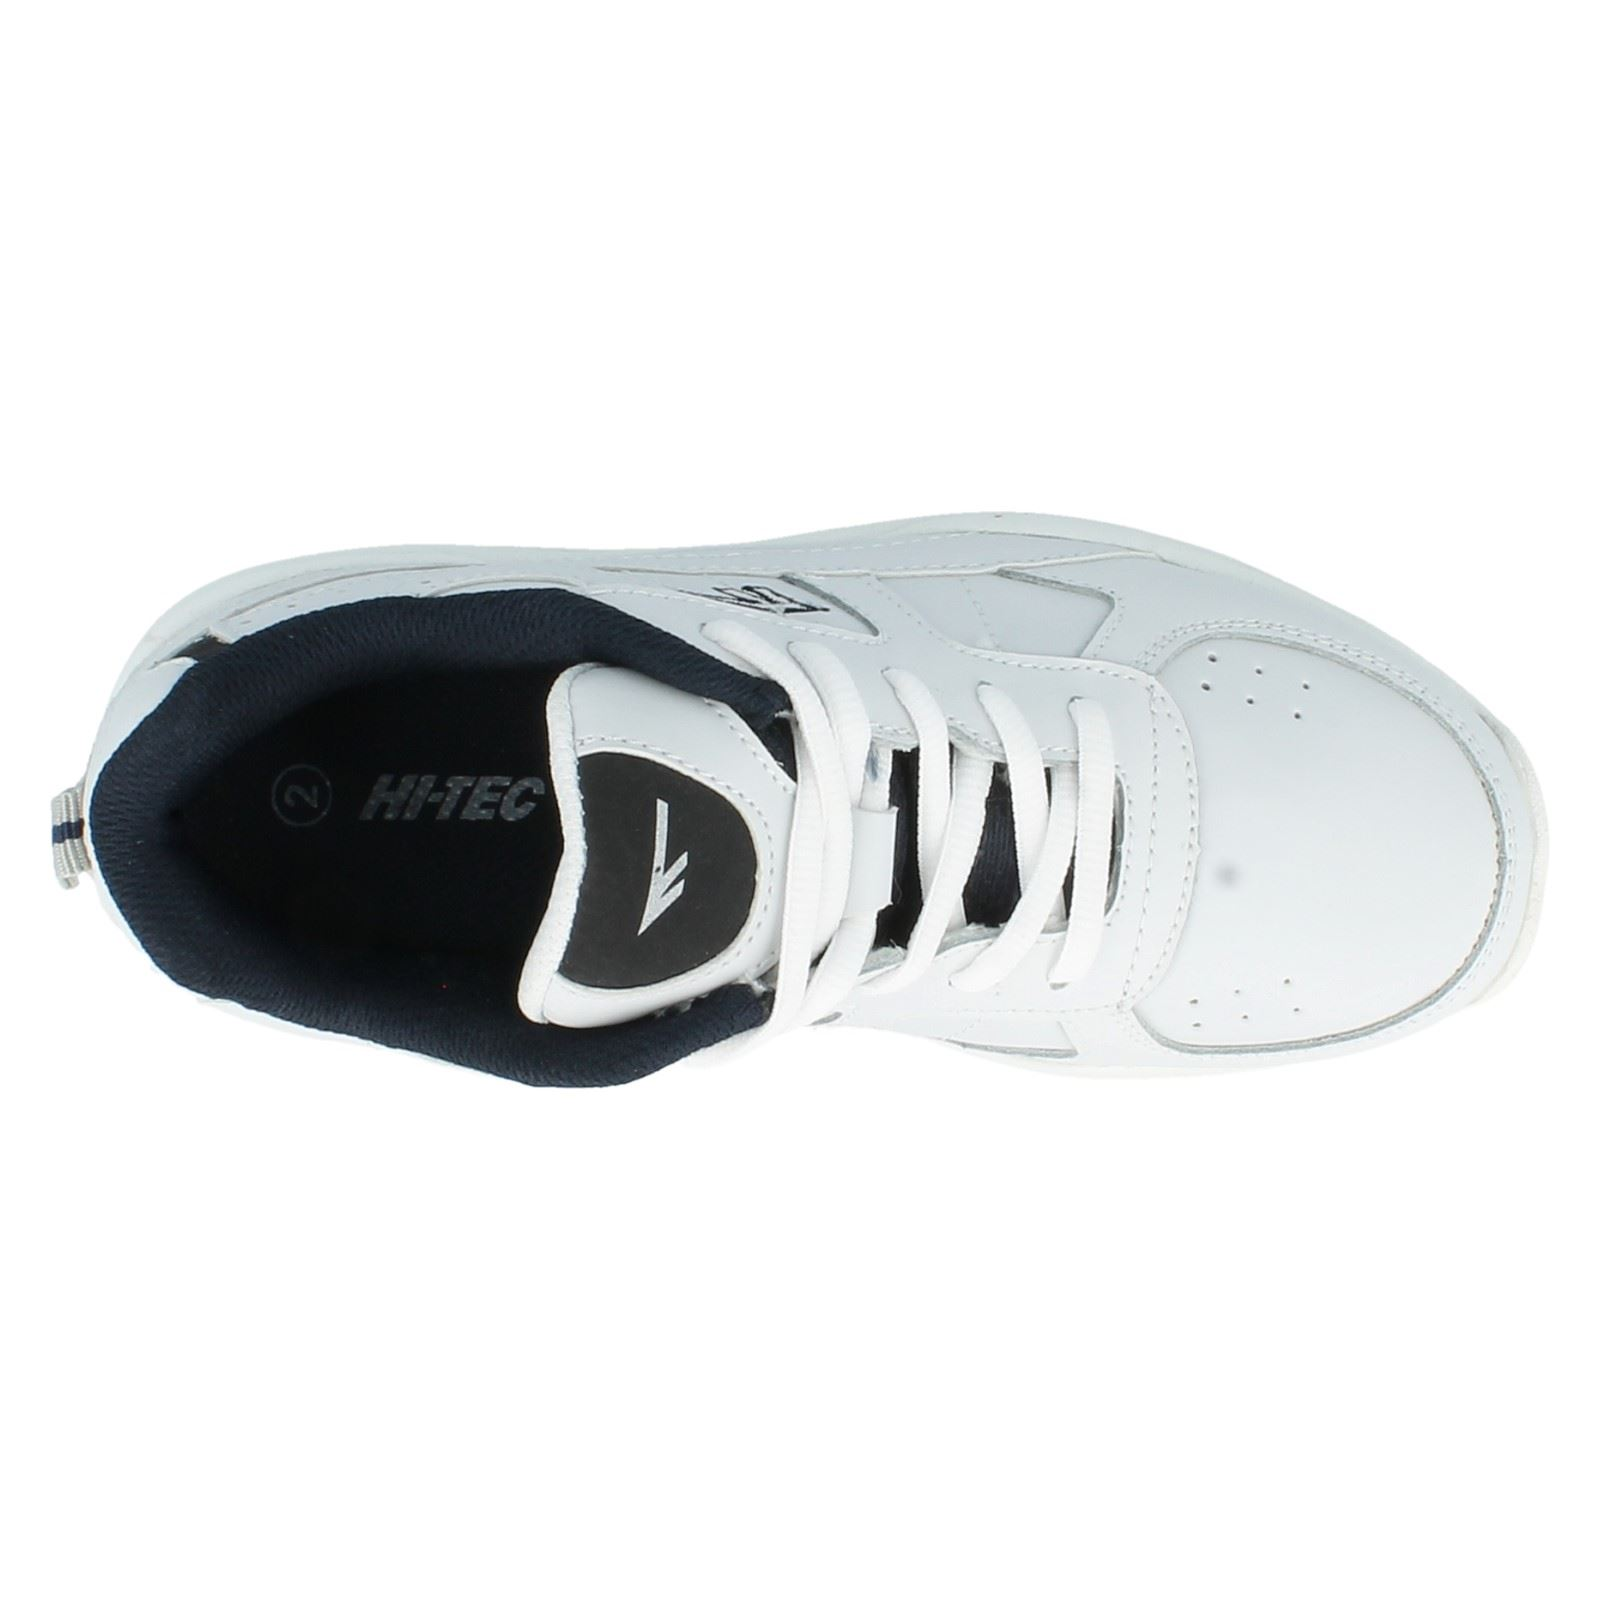 Boys Hi-Tec Trainers Style - Bronx JR (PHY)